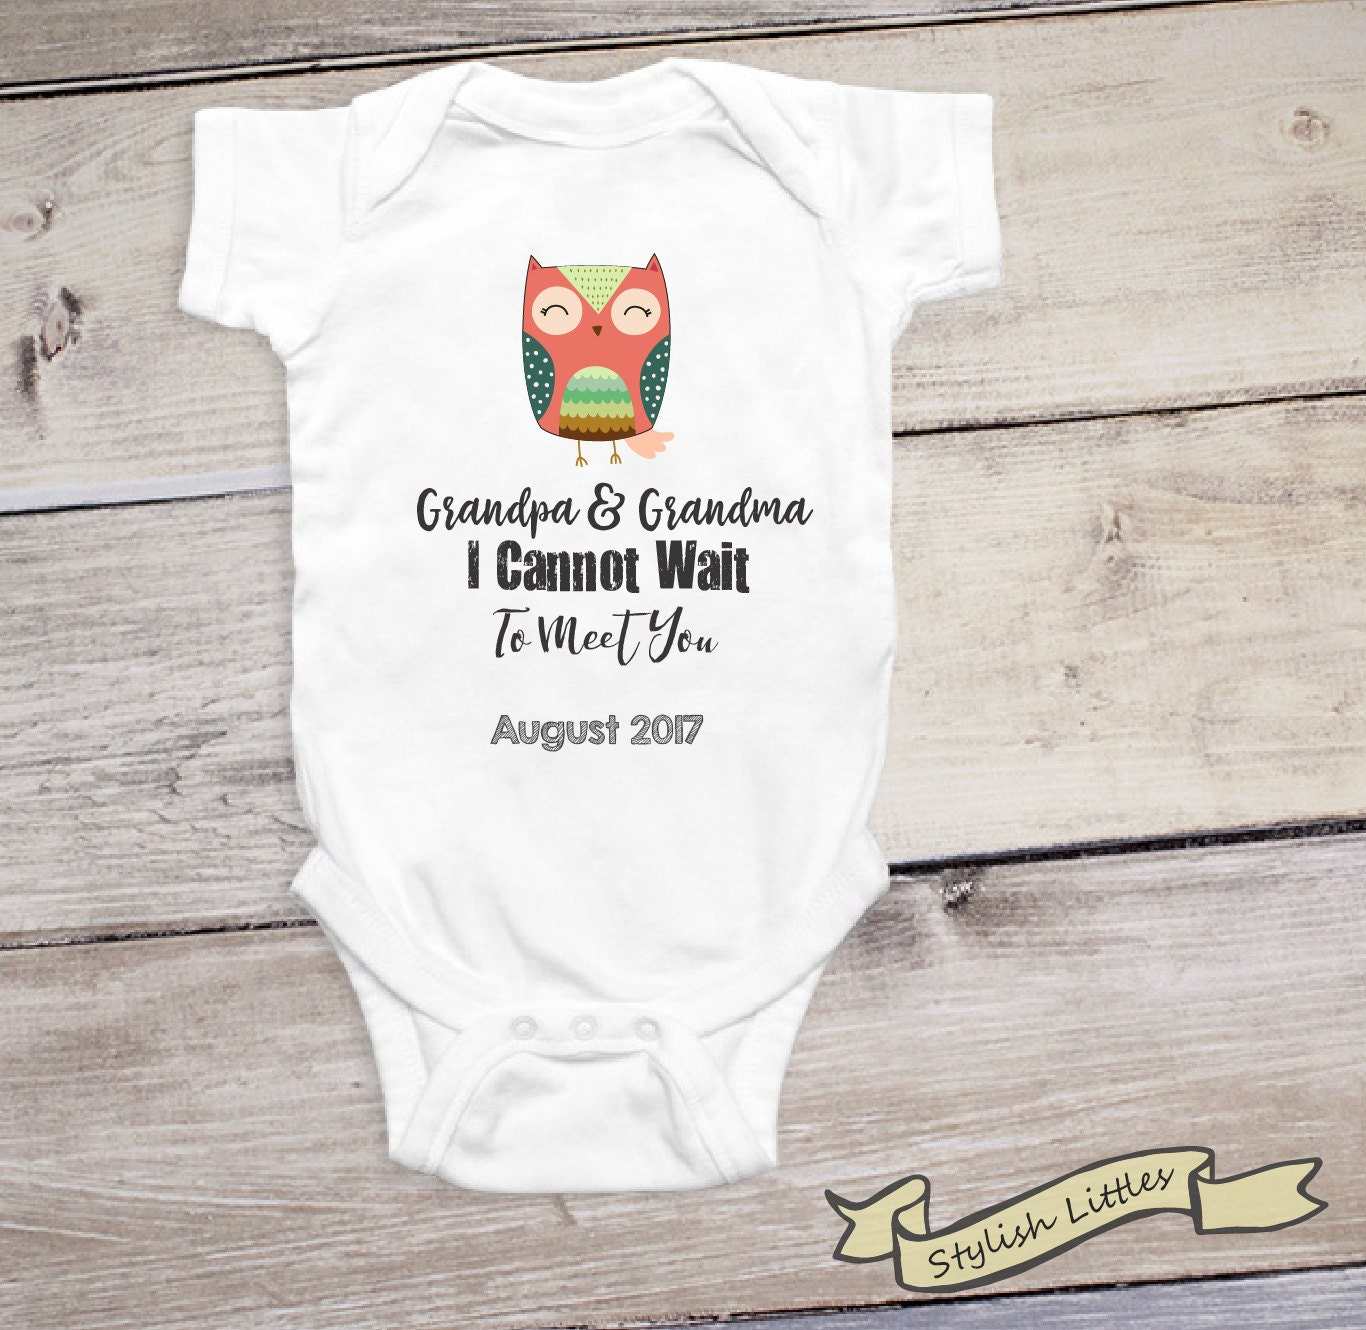 033b899d5 Grandpa and Grandma Baby Announcement for Grandparents ...